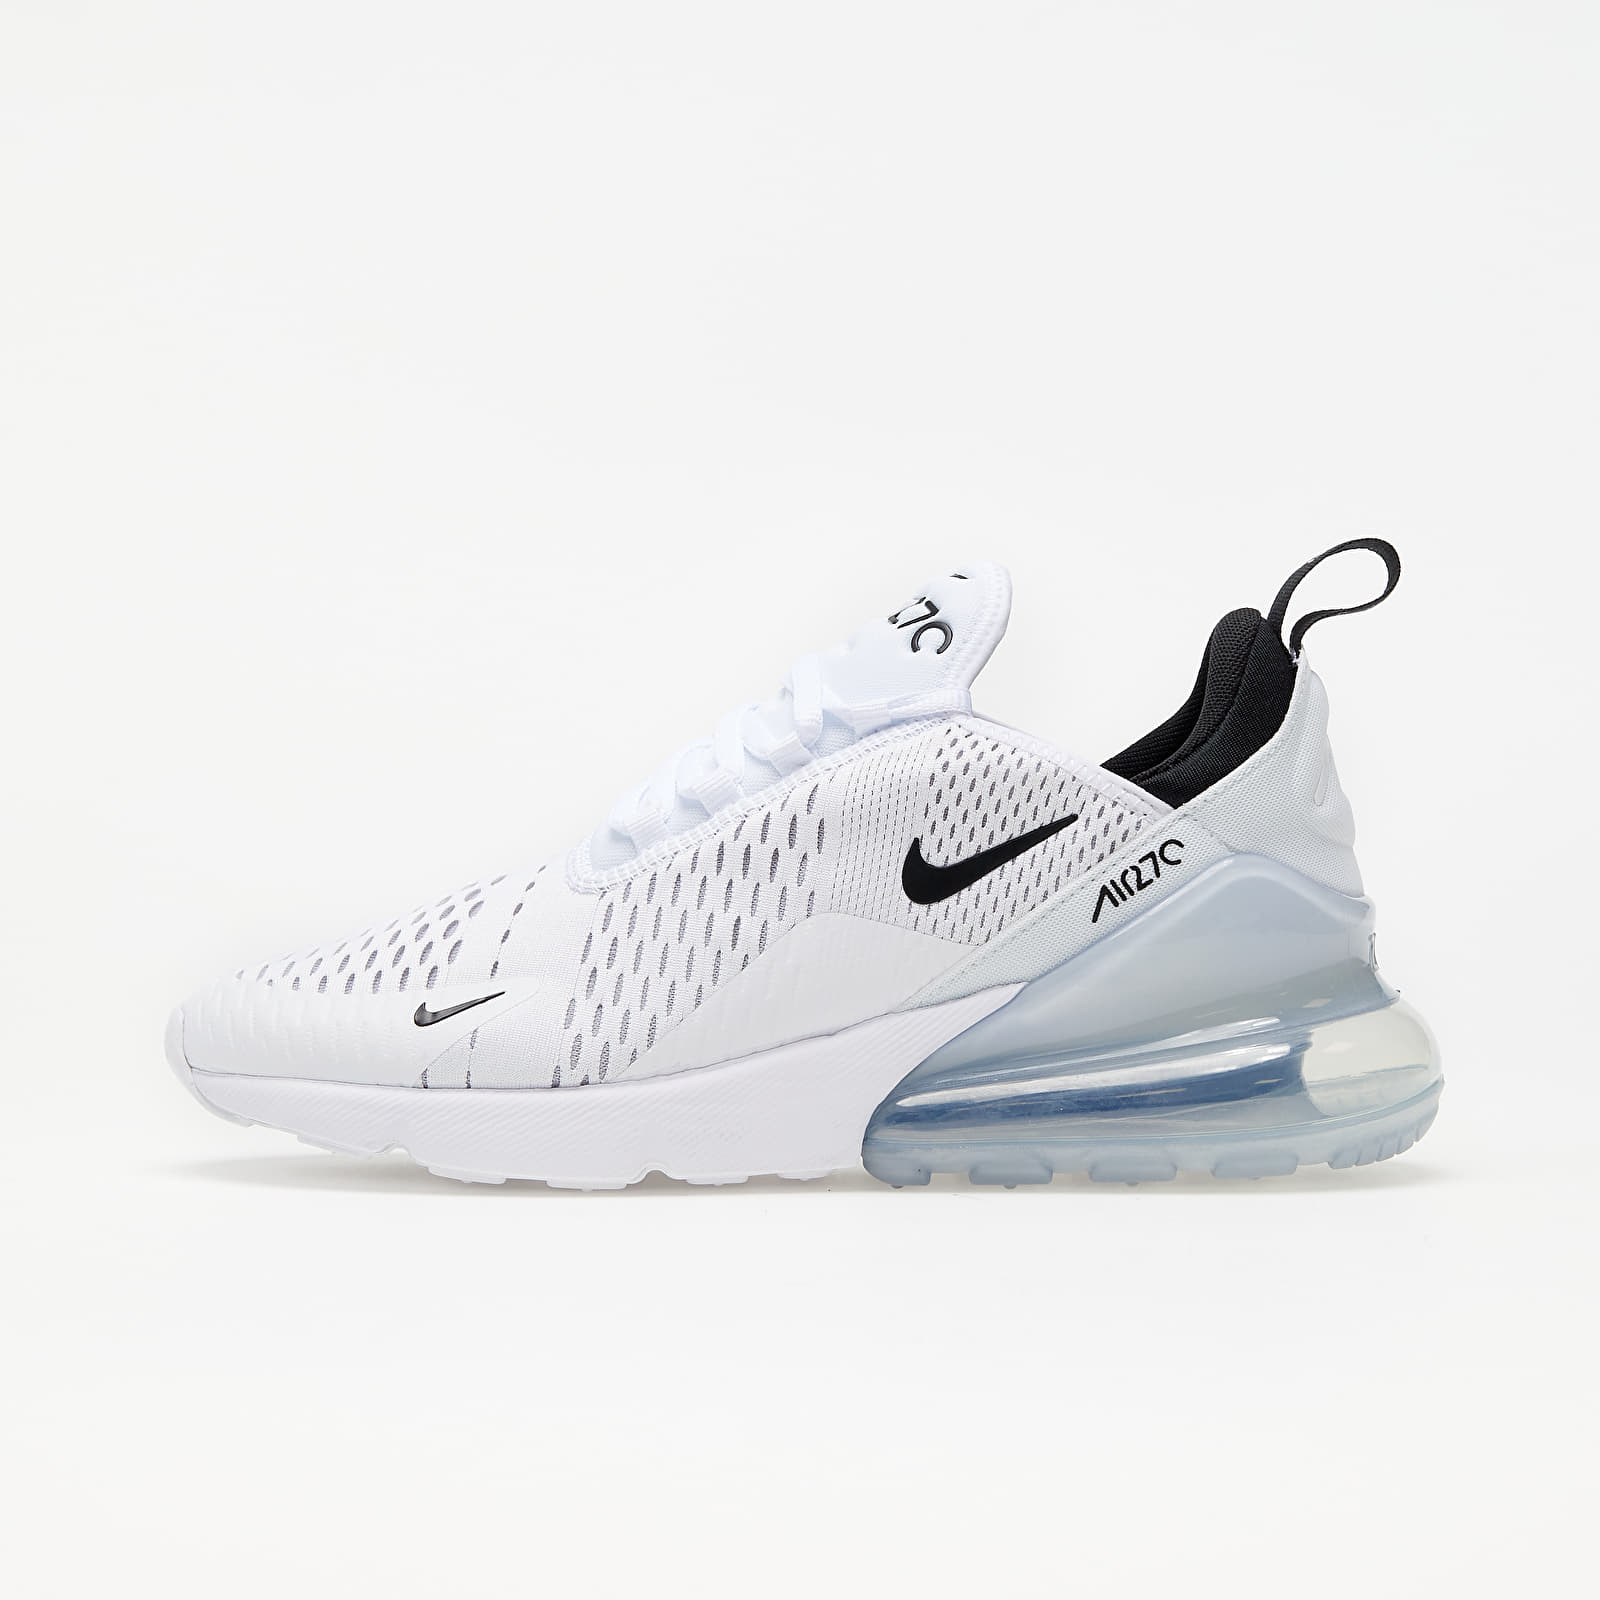 Nike Air Max 270 White/ Black-White EUR 42.5